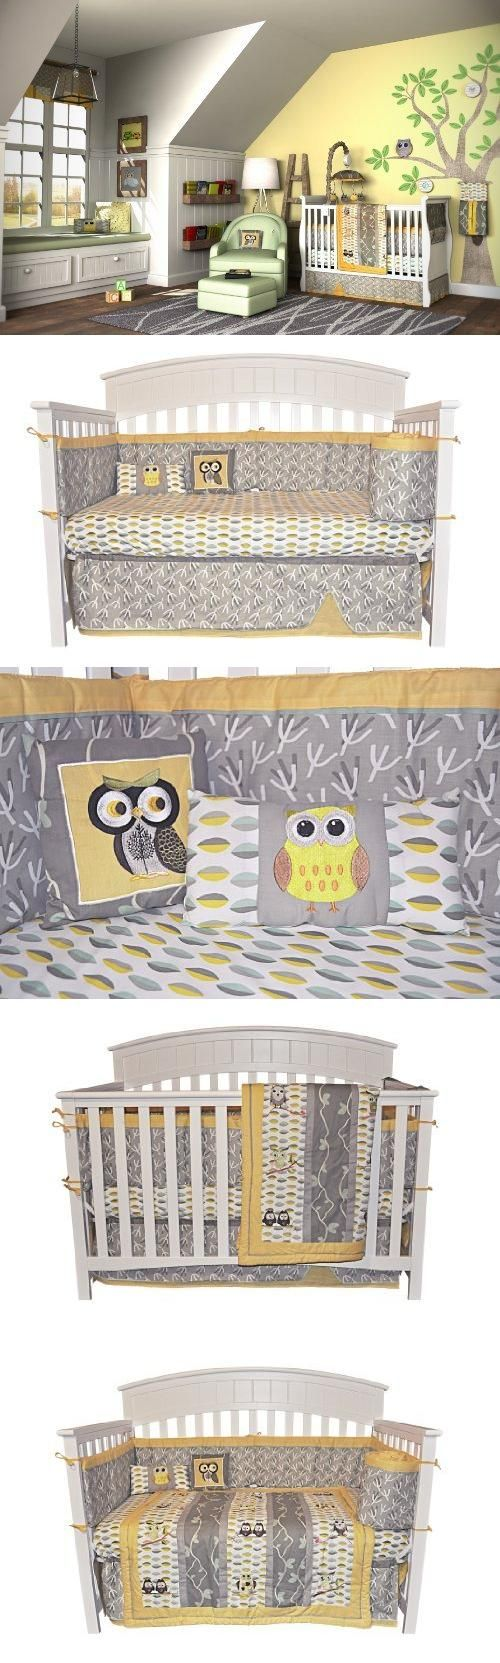 Leigh gender neutral 10pc owl baby crib bedding set grey yellow green - 10pc Owl Gender Neutral Crib Bedding Set Grey Yellow New Born Baby Child